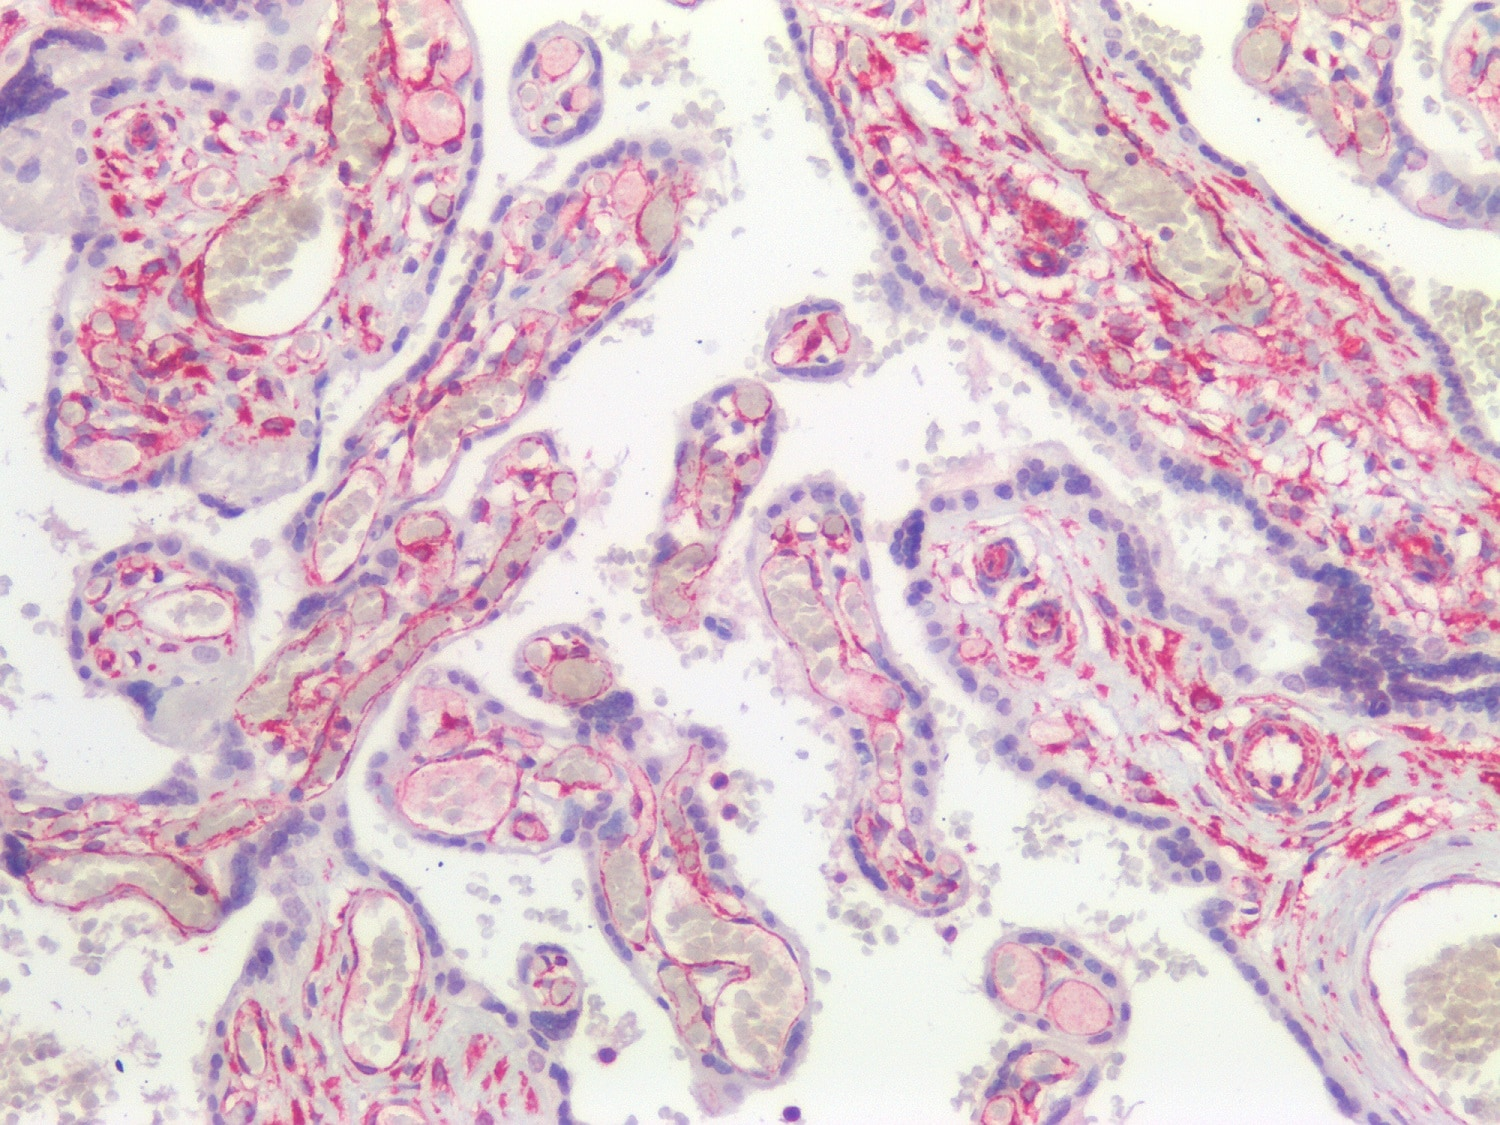 Immunohistochemistry (Formalin/PFA-fixed paraffin-embedded sections) - Anti-Vimentin antibody [RV202] - Cytoskeleton Marker (ab8978)